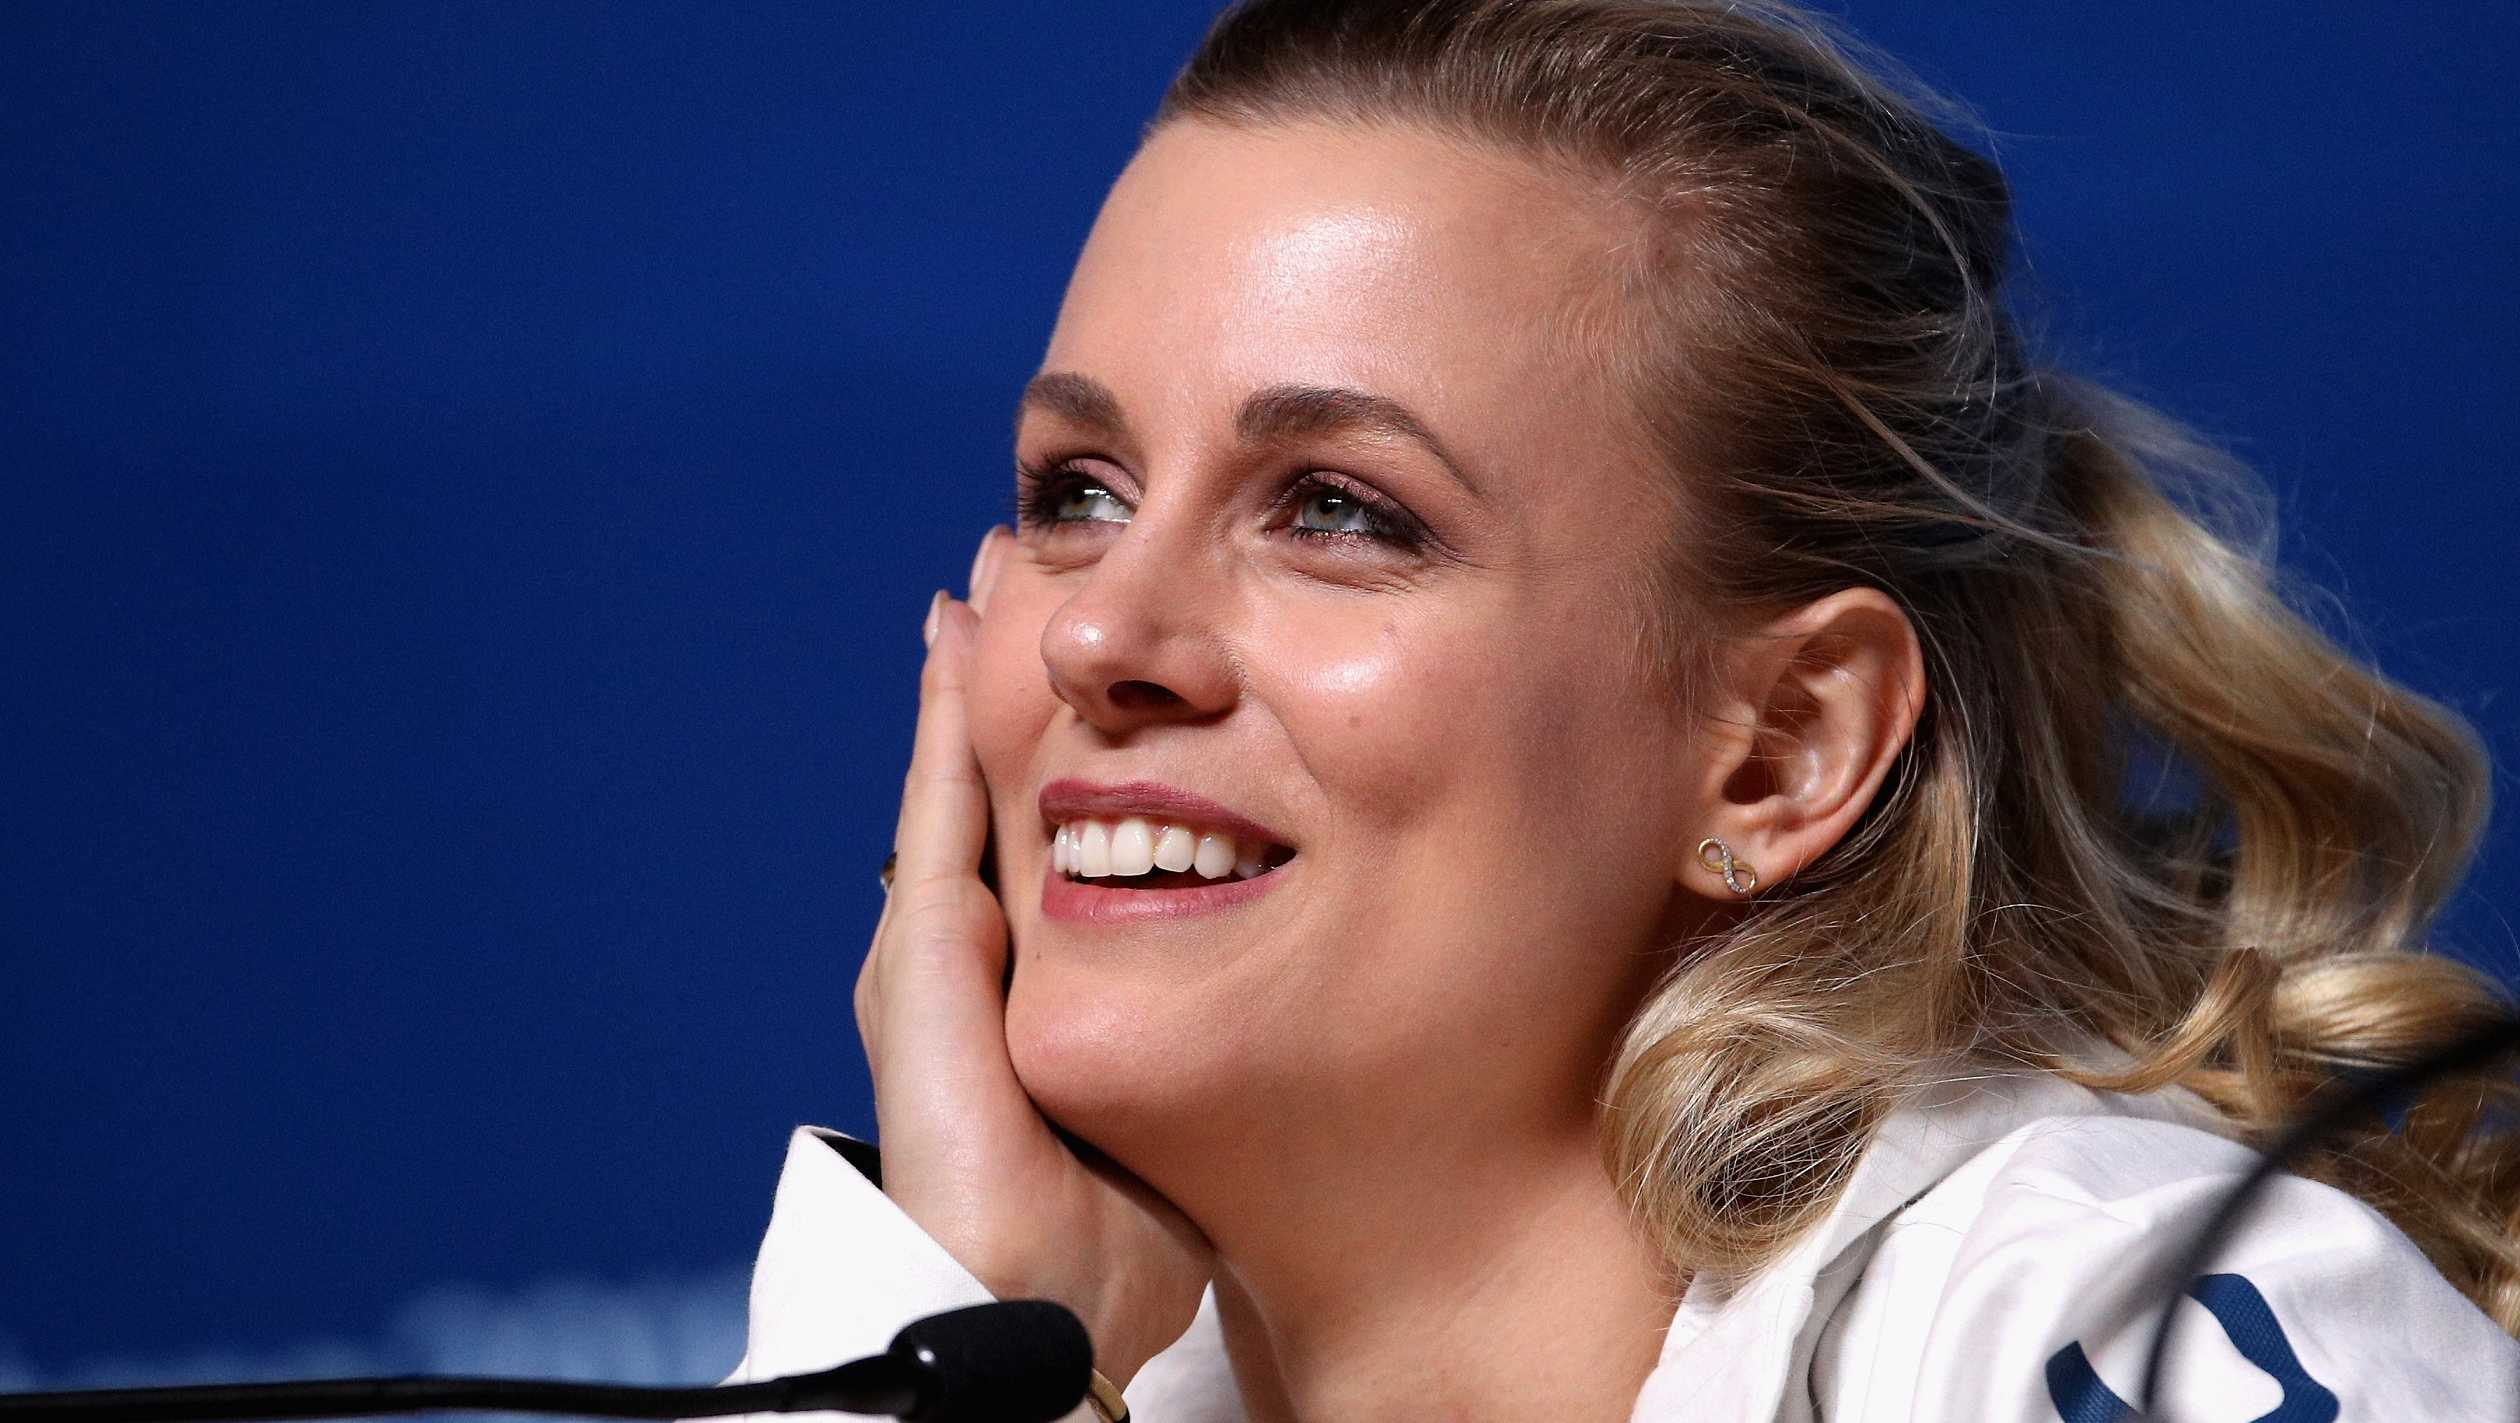 Figure skater Madison Hubbell speaks during a press conference during the Pyeongchang 2018 Winter Olympic Games on February 16, 2018 in Pyeongchang-gun, South Korea.